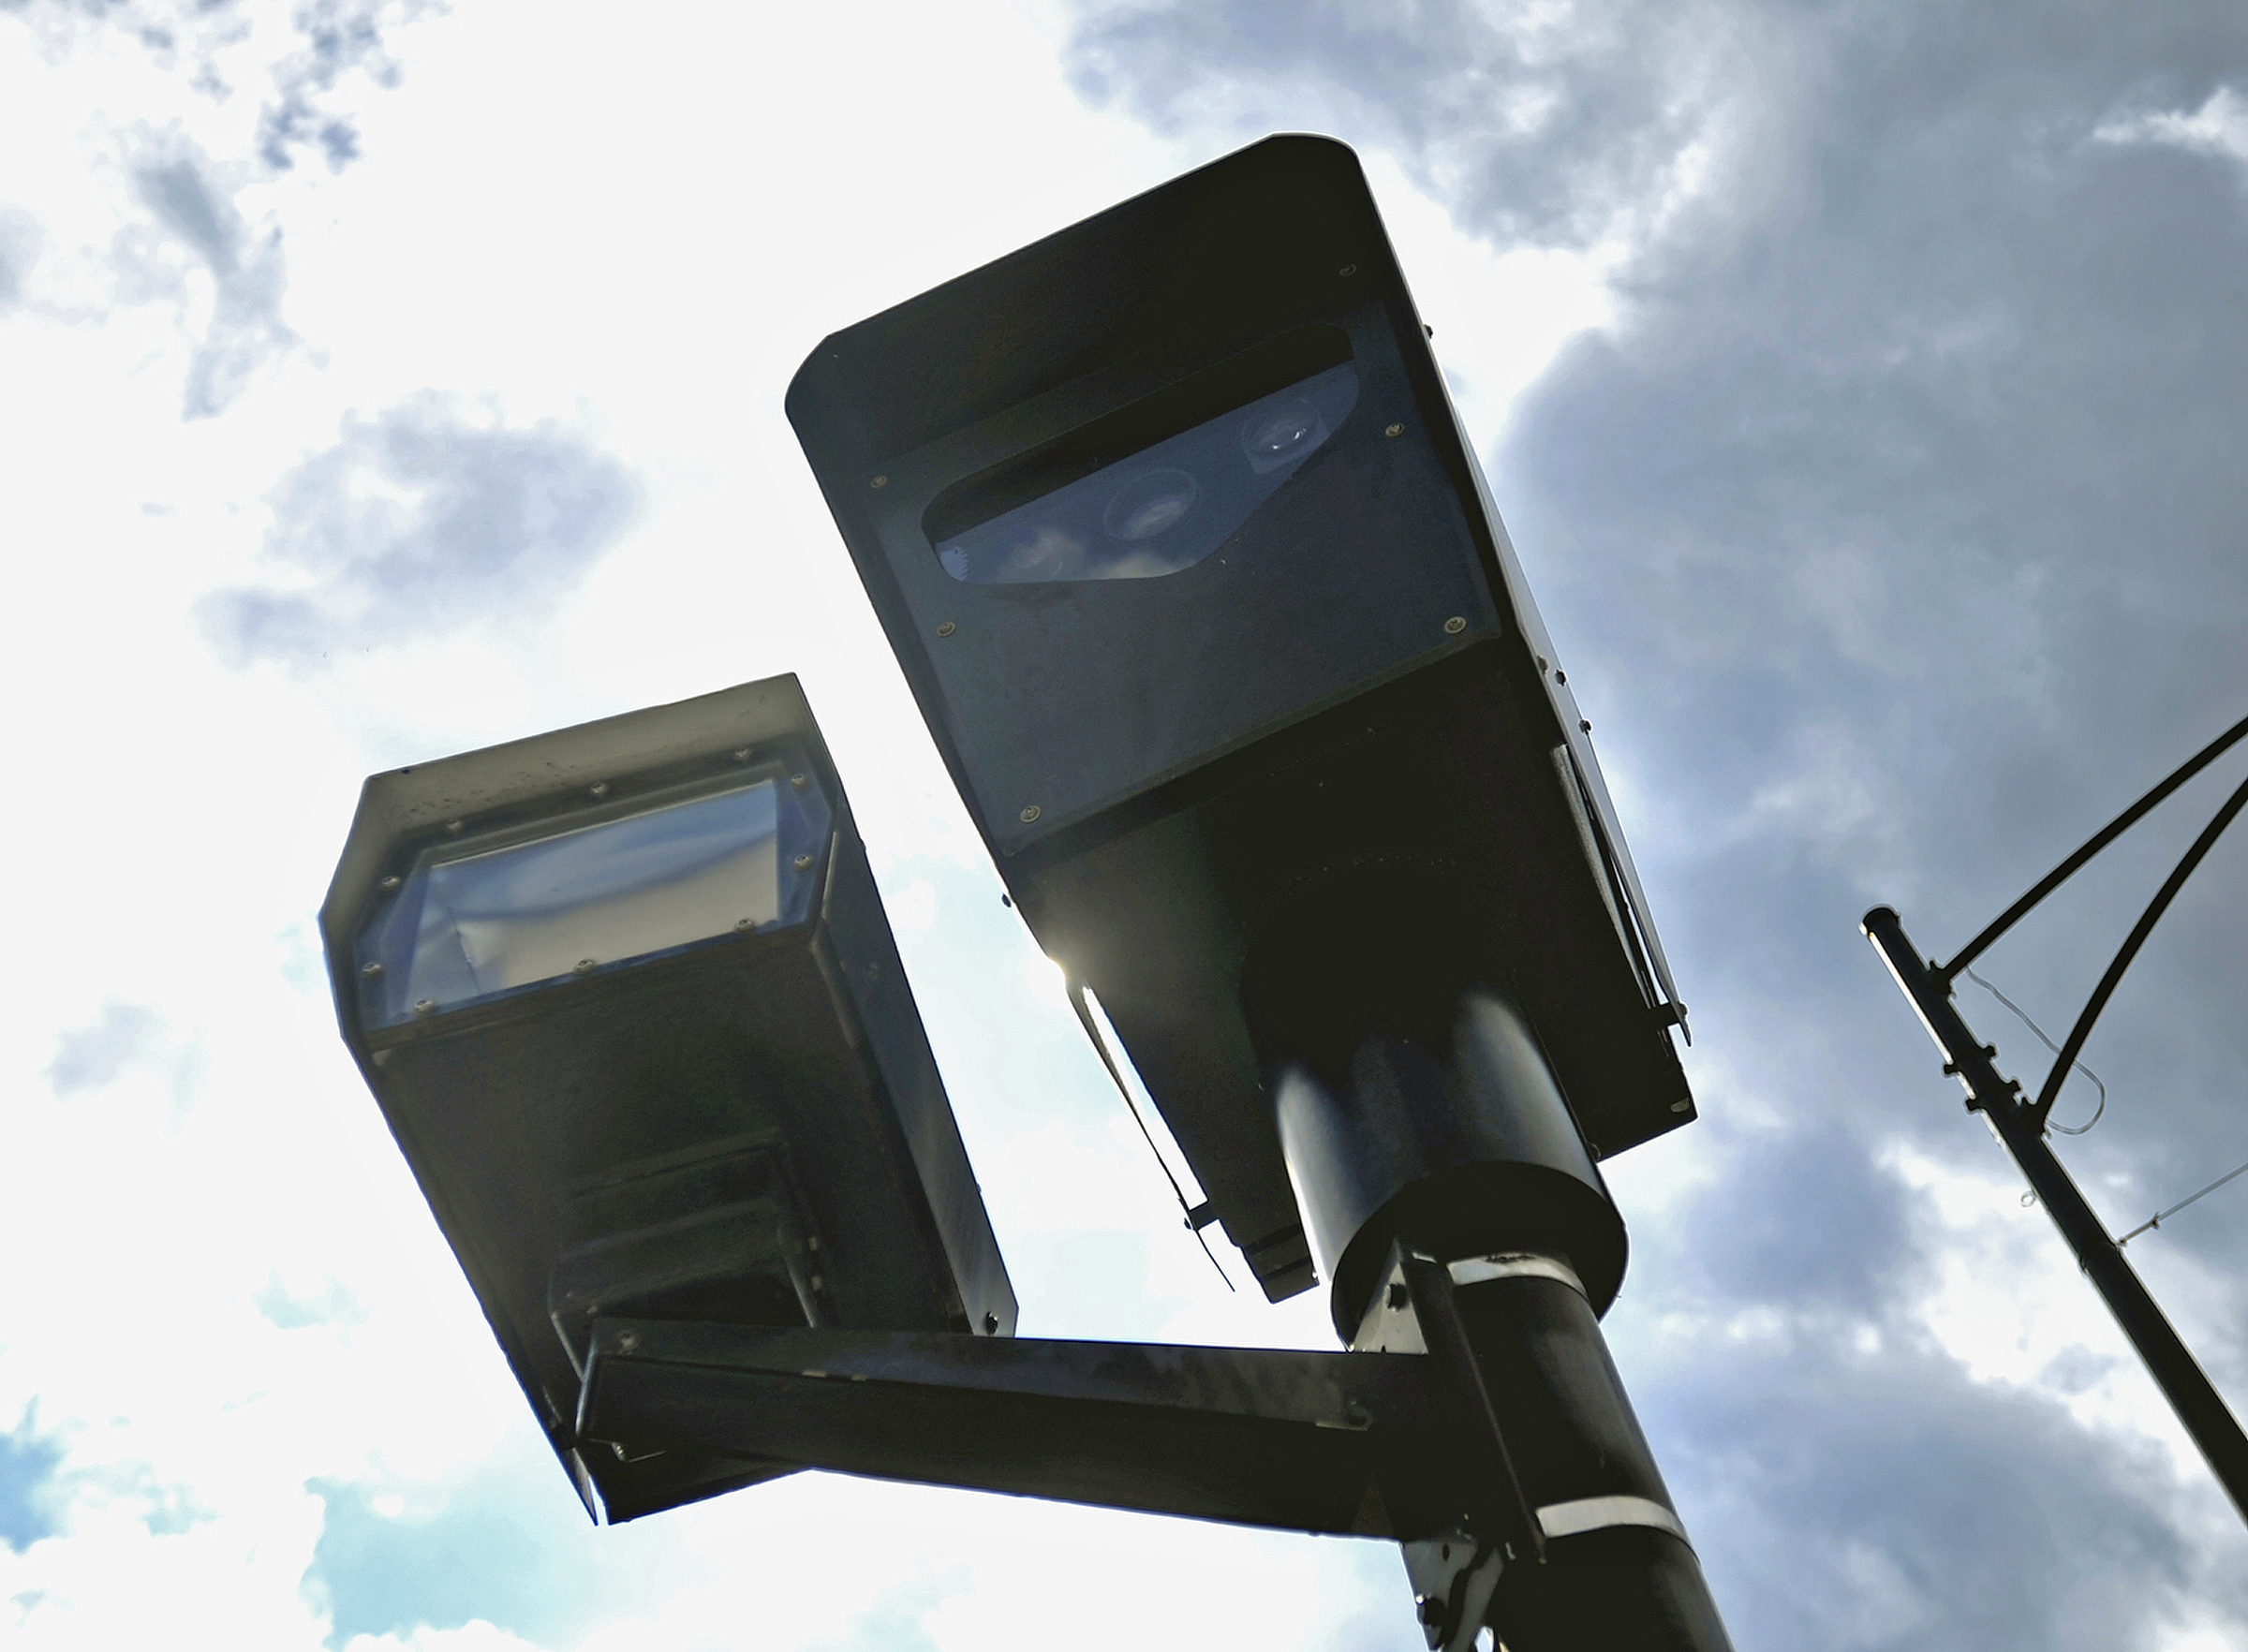 Cameras at 63rd Street and Western Avenue on Wednesday, April 18, 2012.